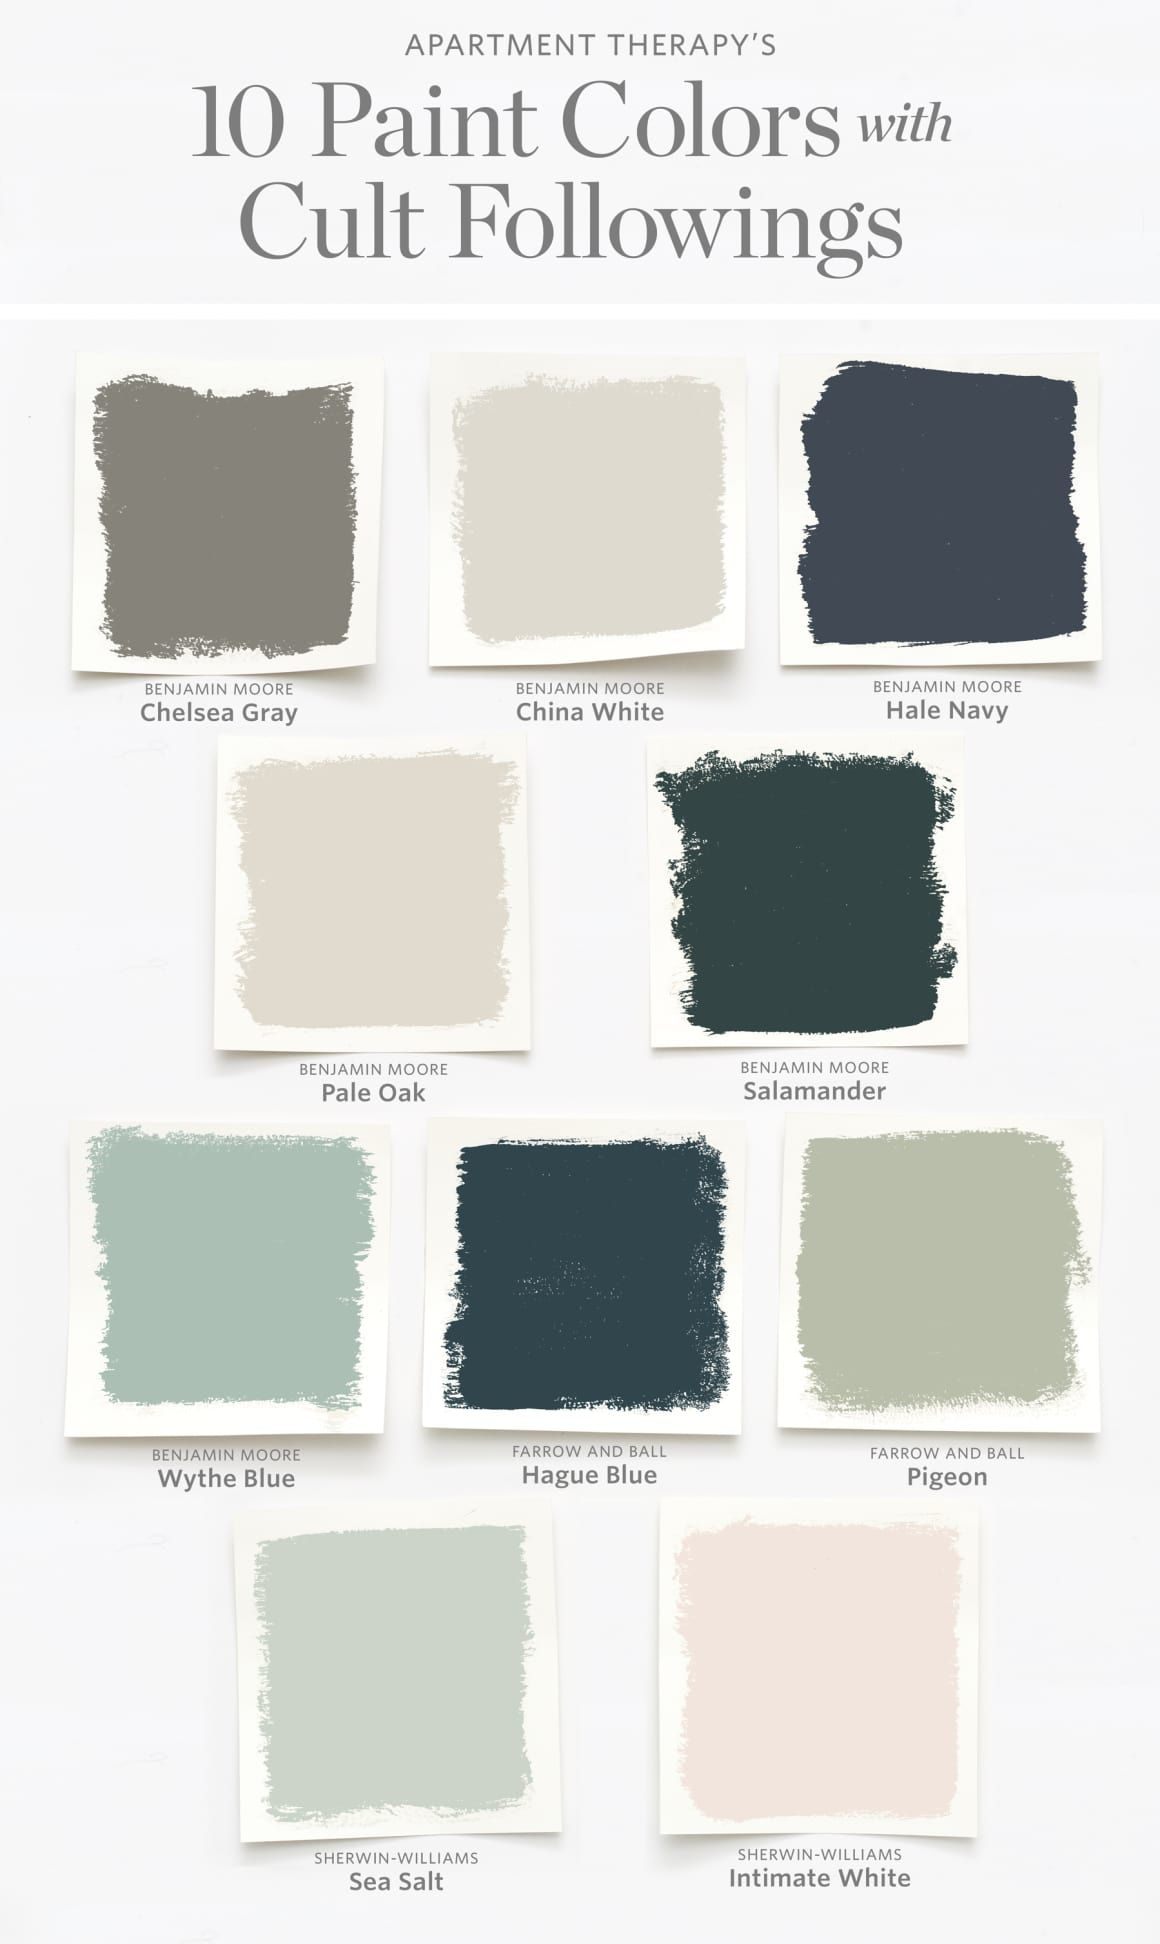 10 Paint Colors With Cult Followings | Apartment Therapy